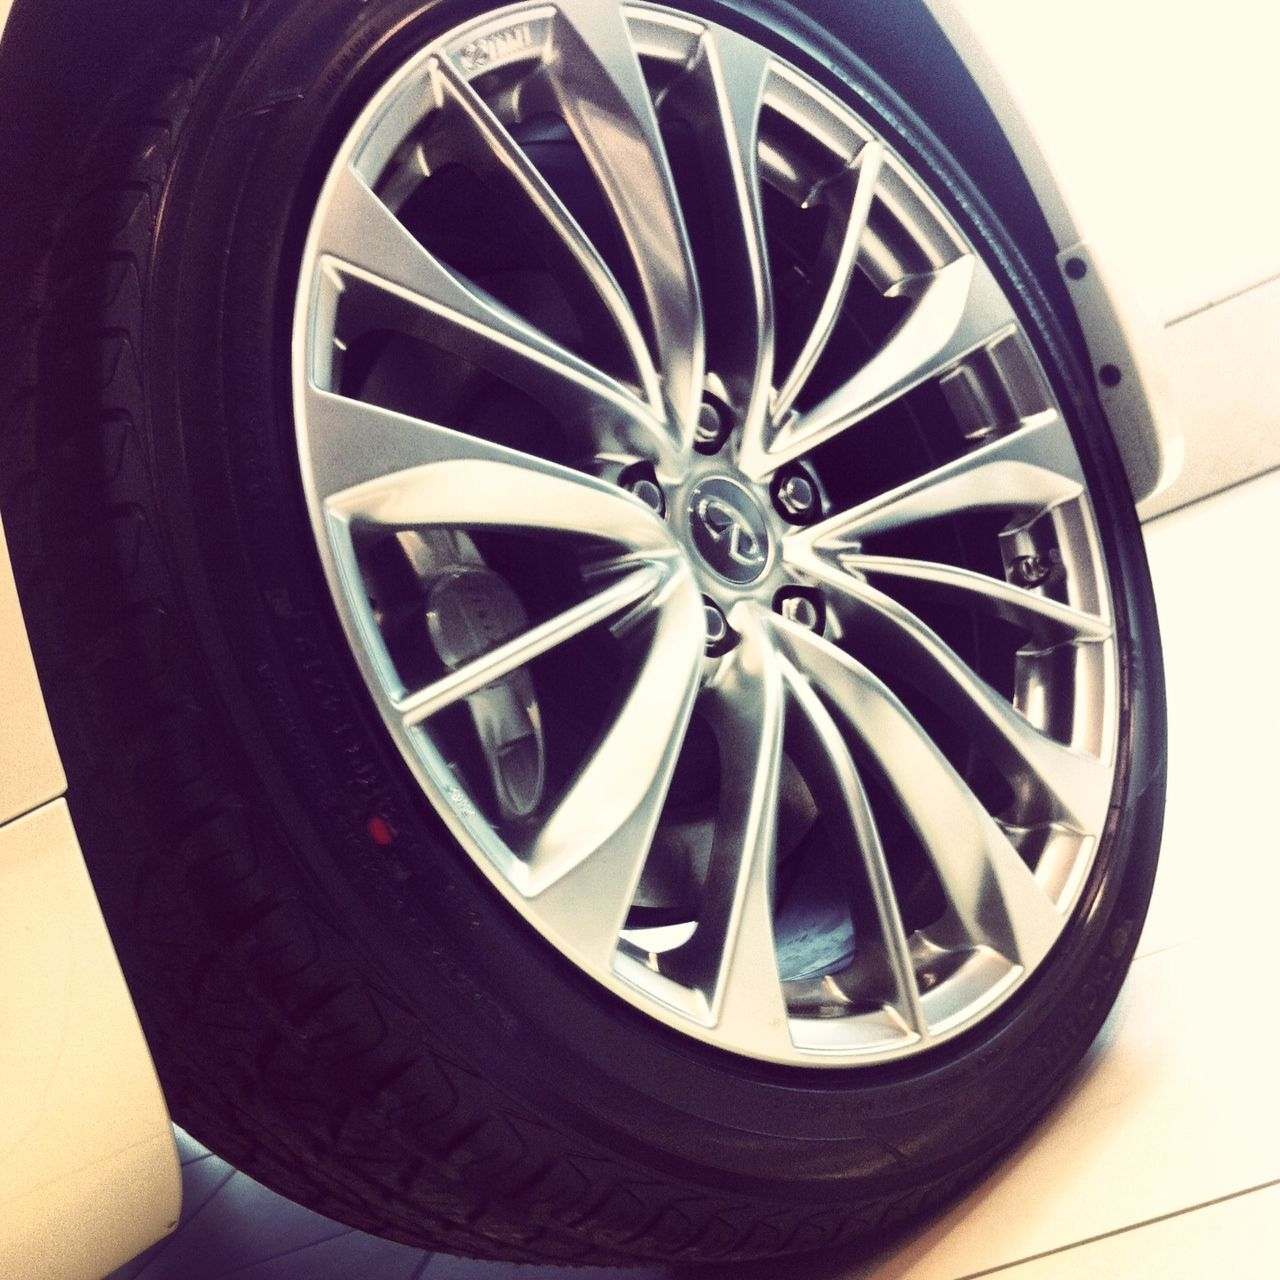 19'' Alloy wheels on the 2013 Infiniti G37 Coupe AWD Sport